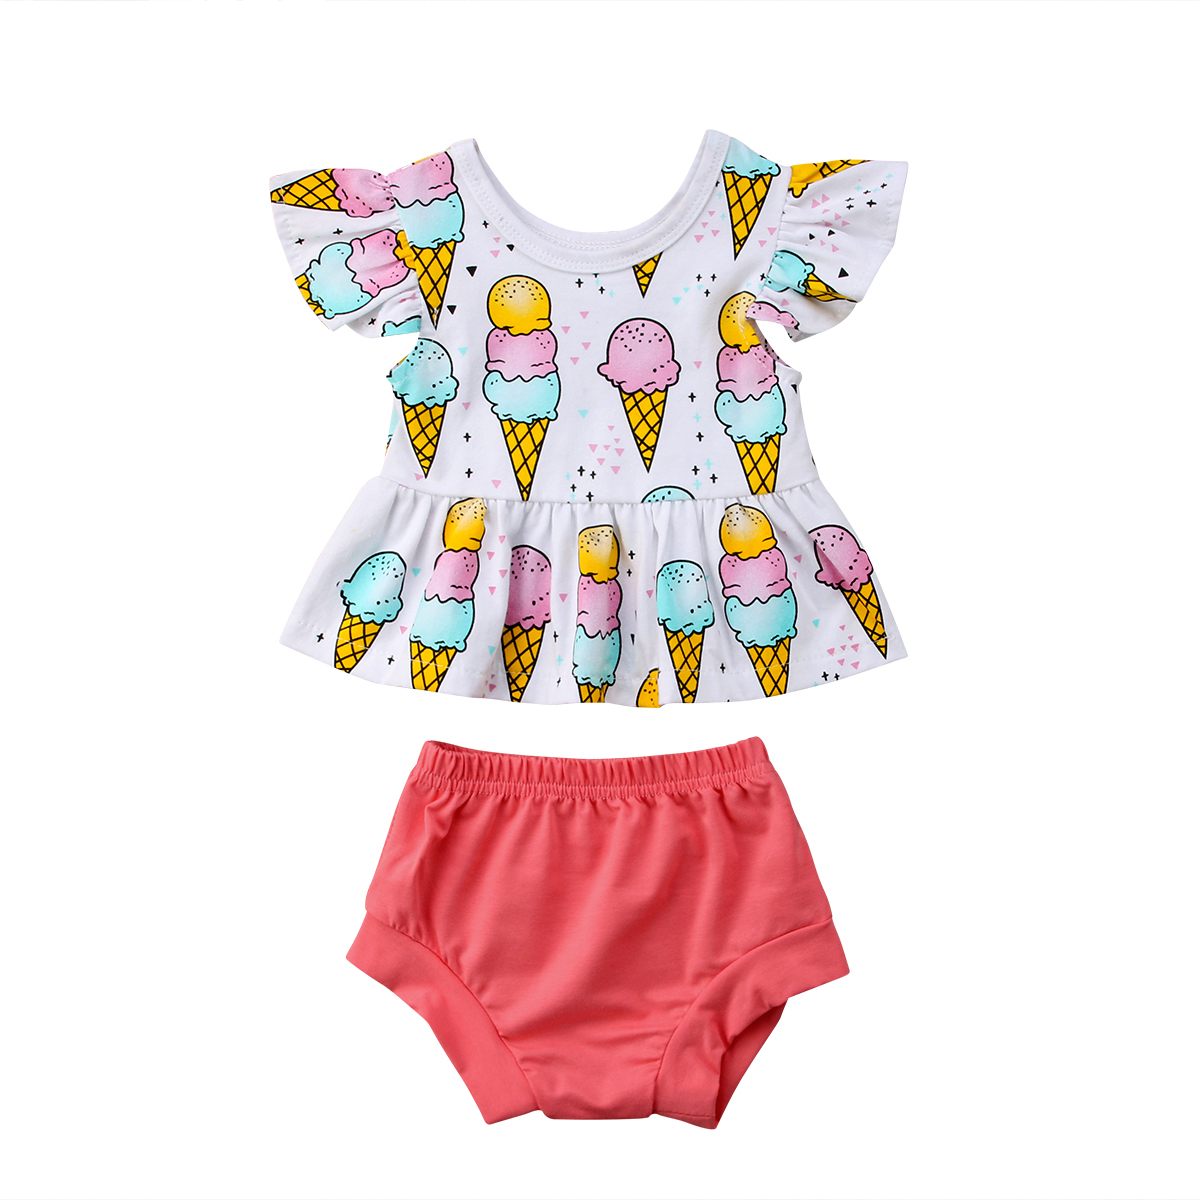 Baby Girl Clothes Sale Clearance